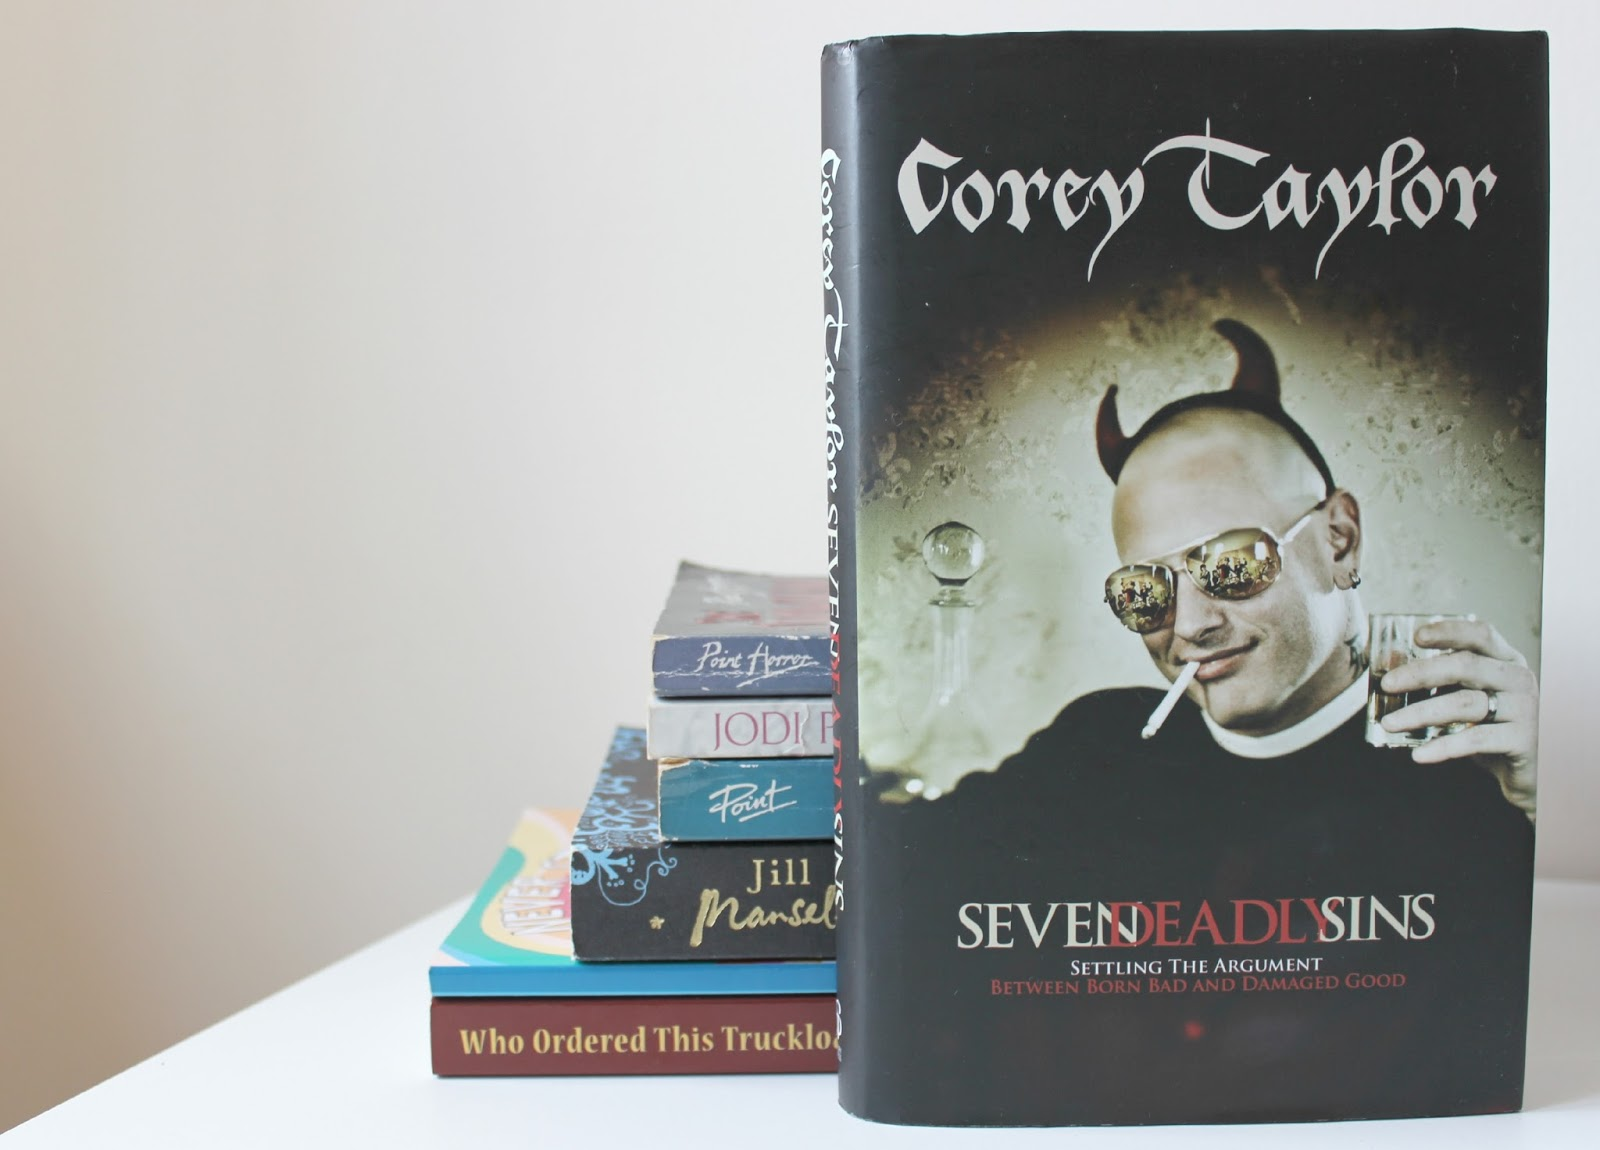 A picture of Seven Deadly Sins: Settling the Argument Between Born Bad and Damaged Good by Corey Taylor